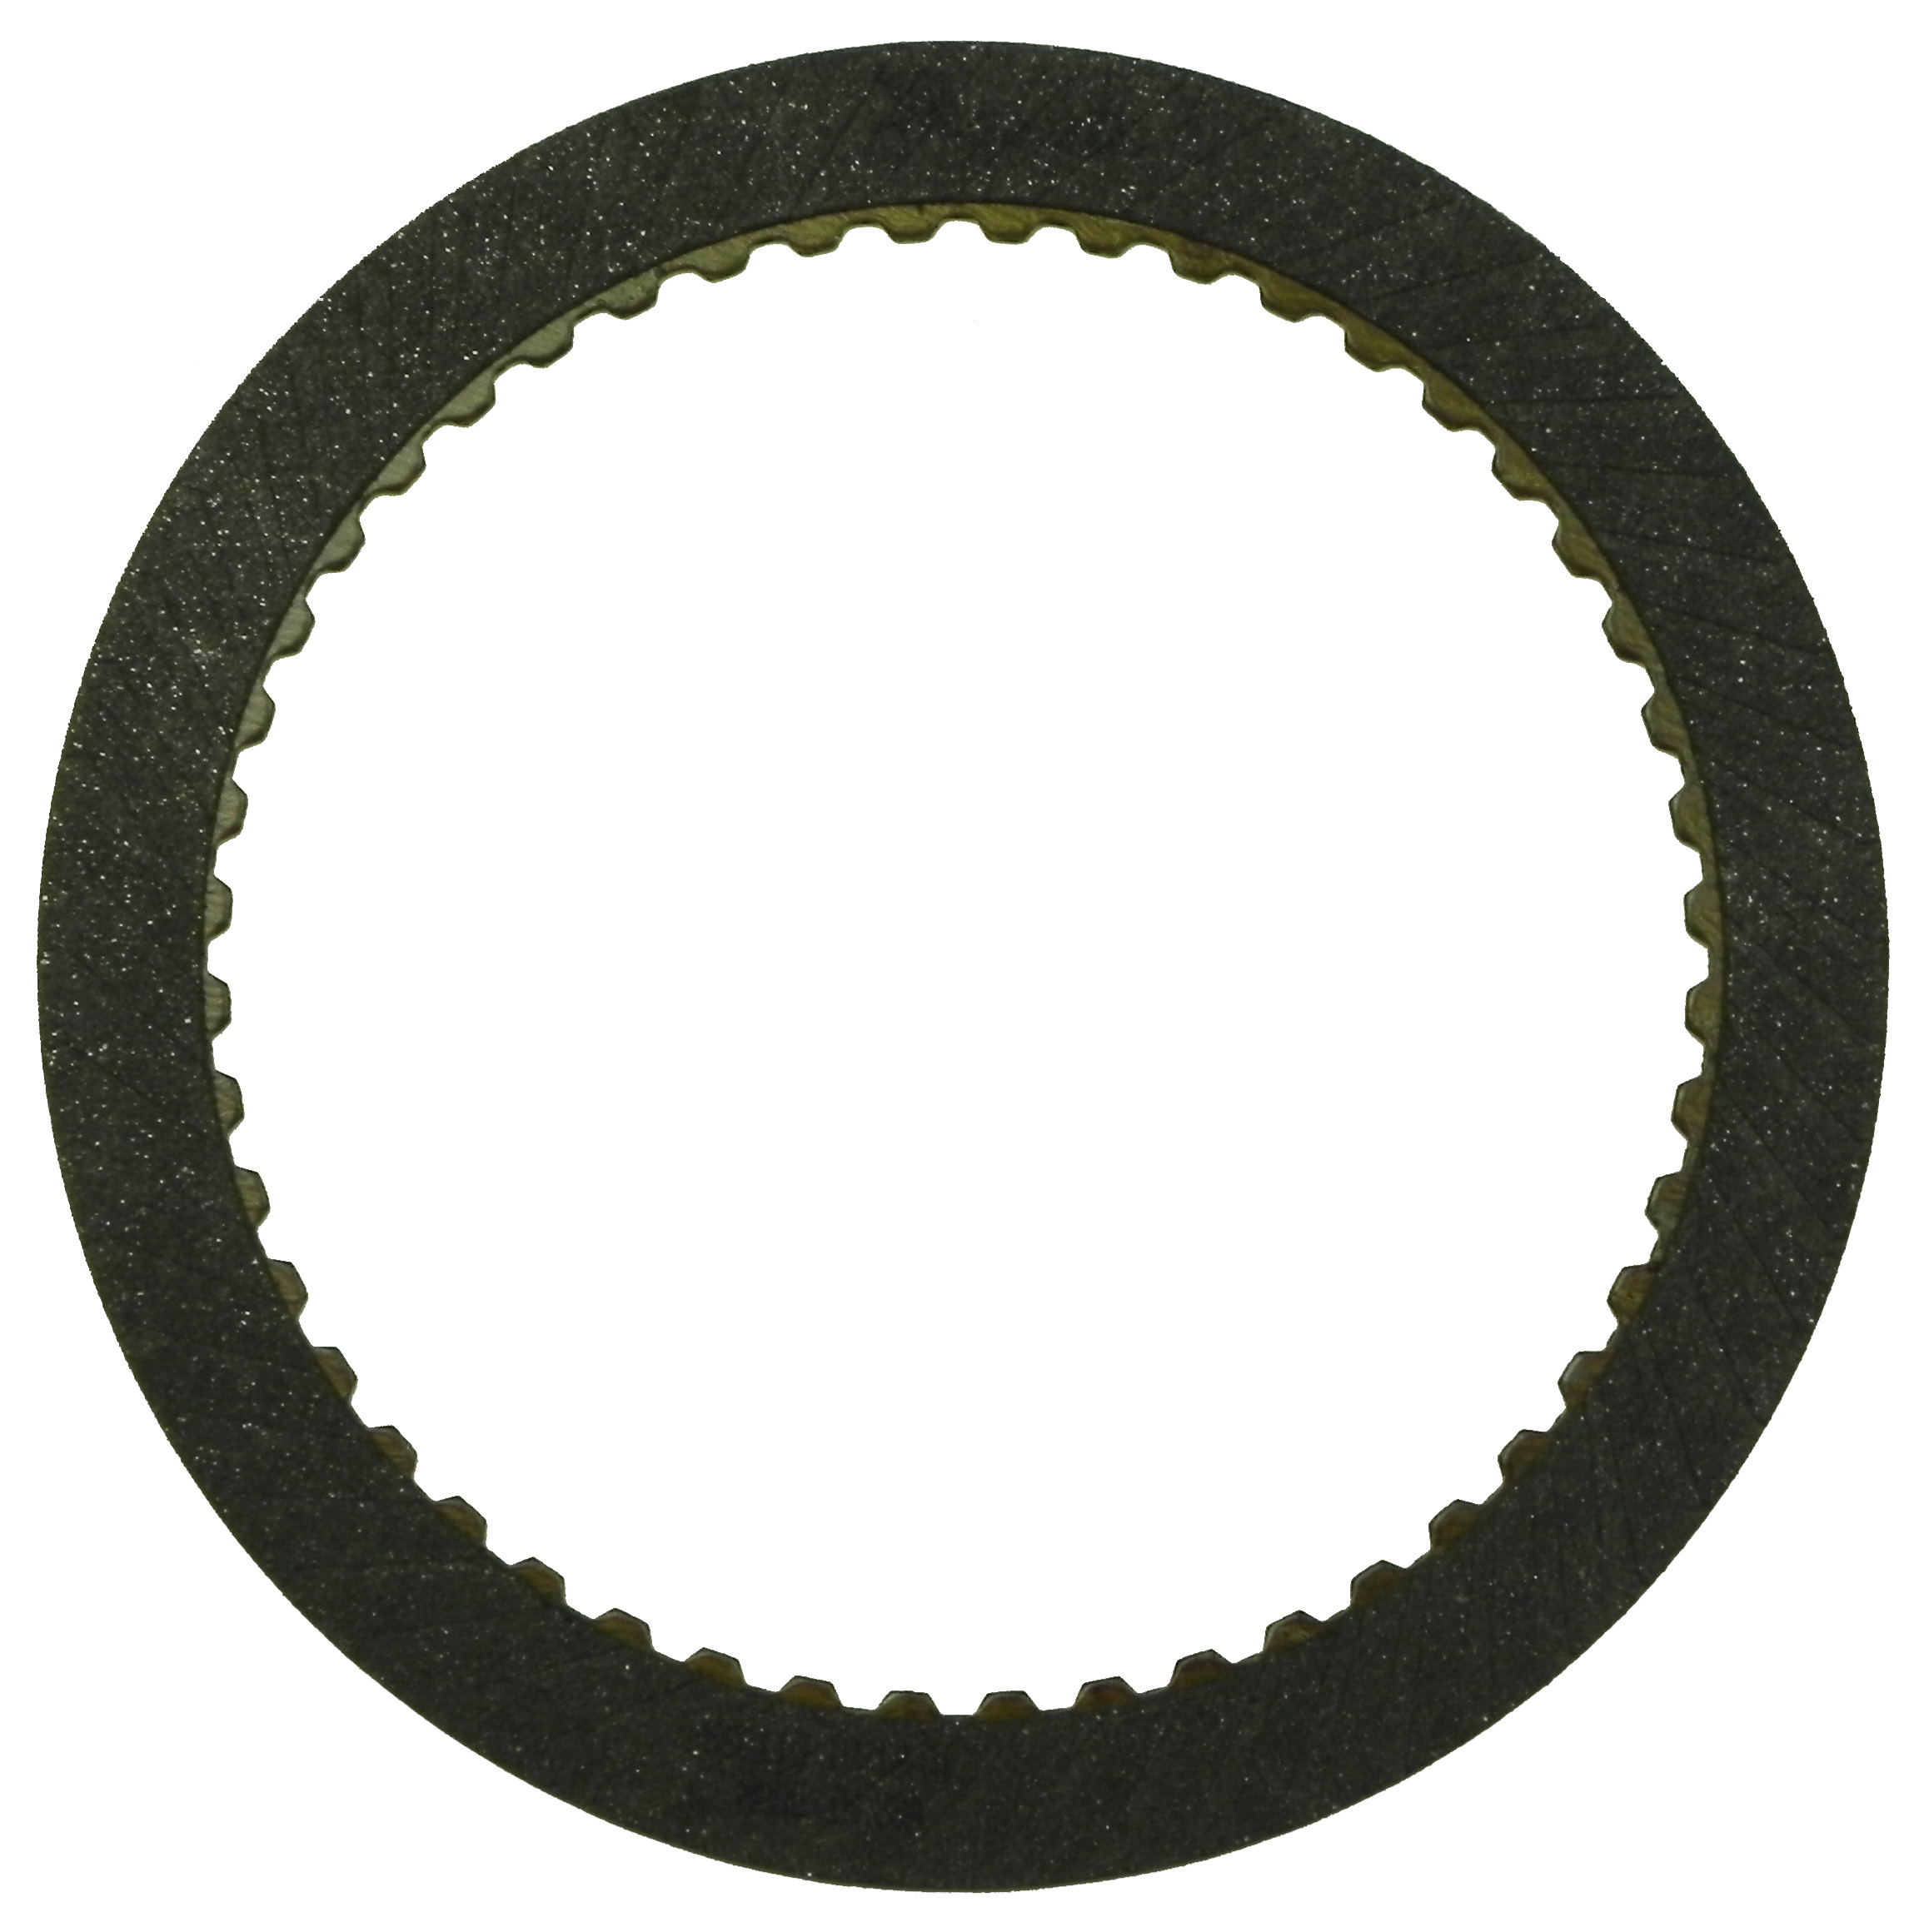 R560110 | 1999-ON Friction Clutch Plate High Energy High Reverse Internal Spline, Single Sided High Energy